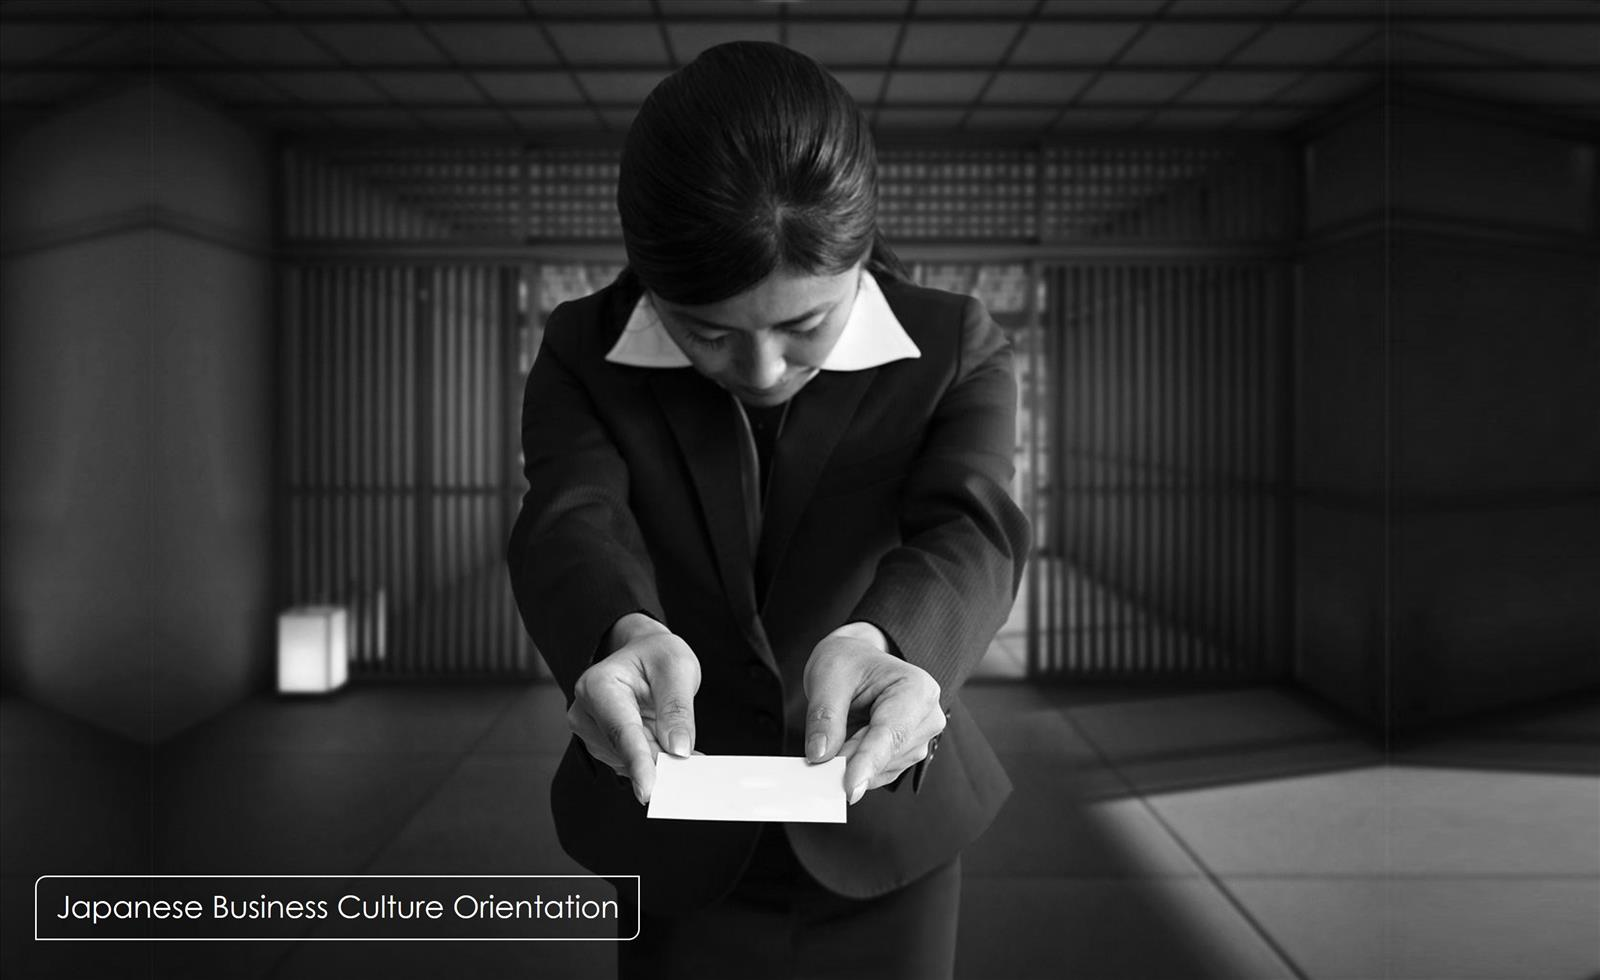 Japanese Business Culture Orientation